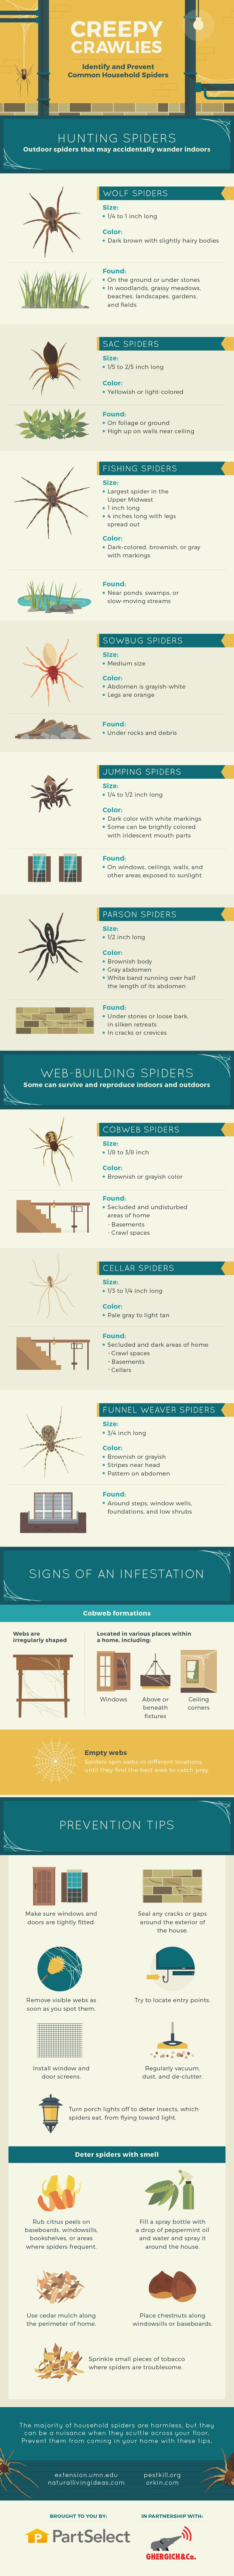 How to Keep Creepy Spiders Out of Your Home - Infographic